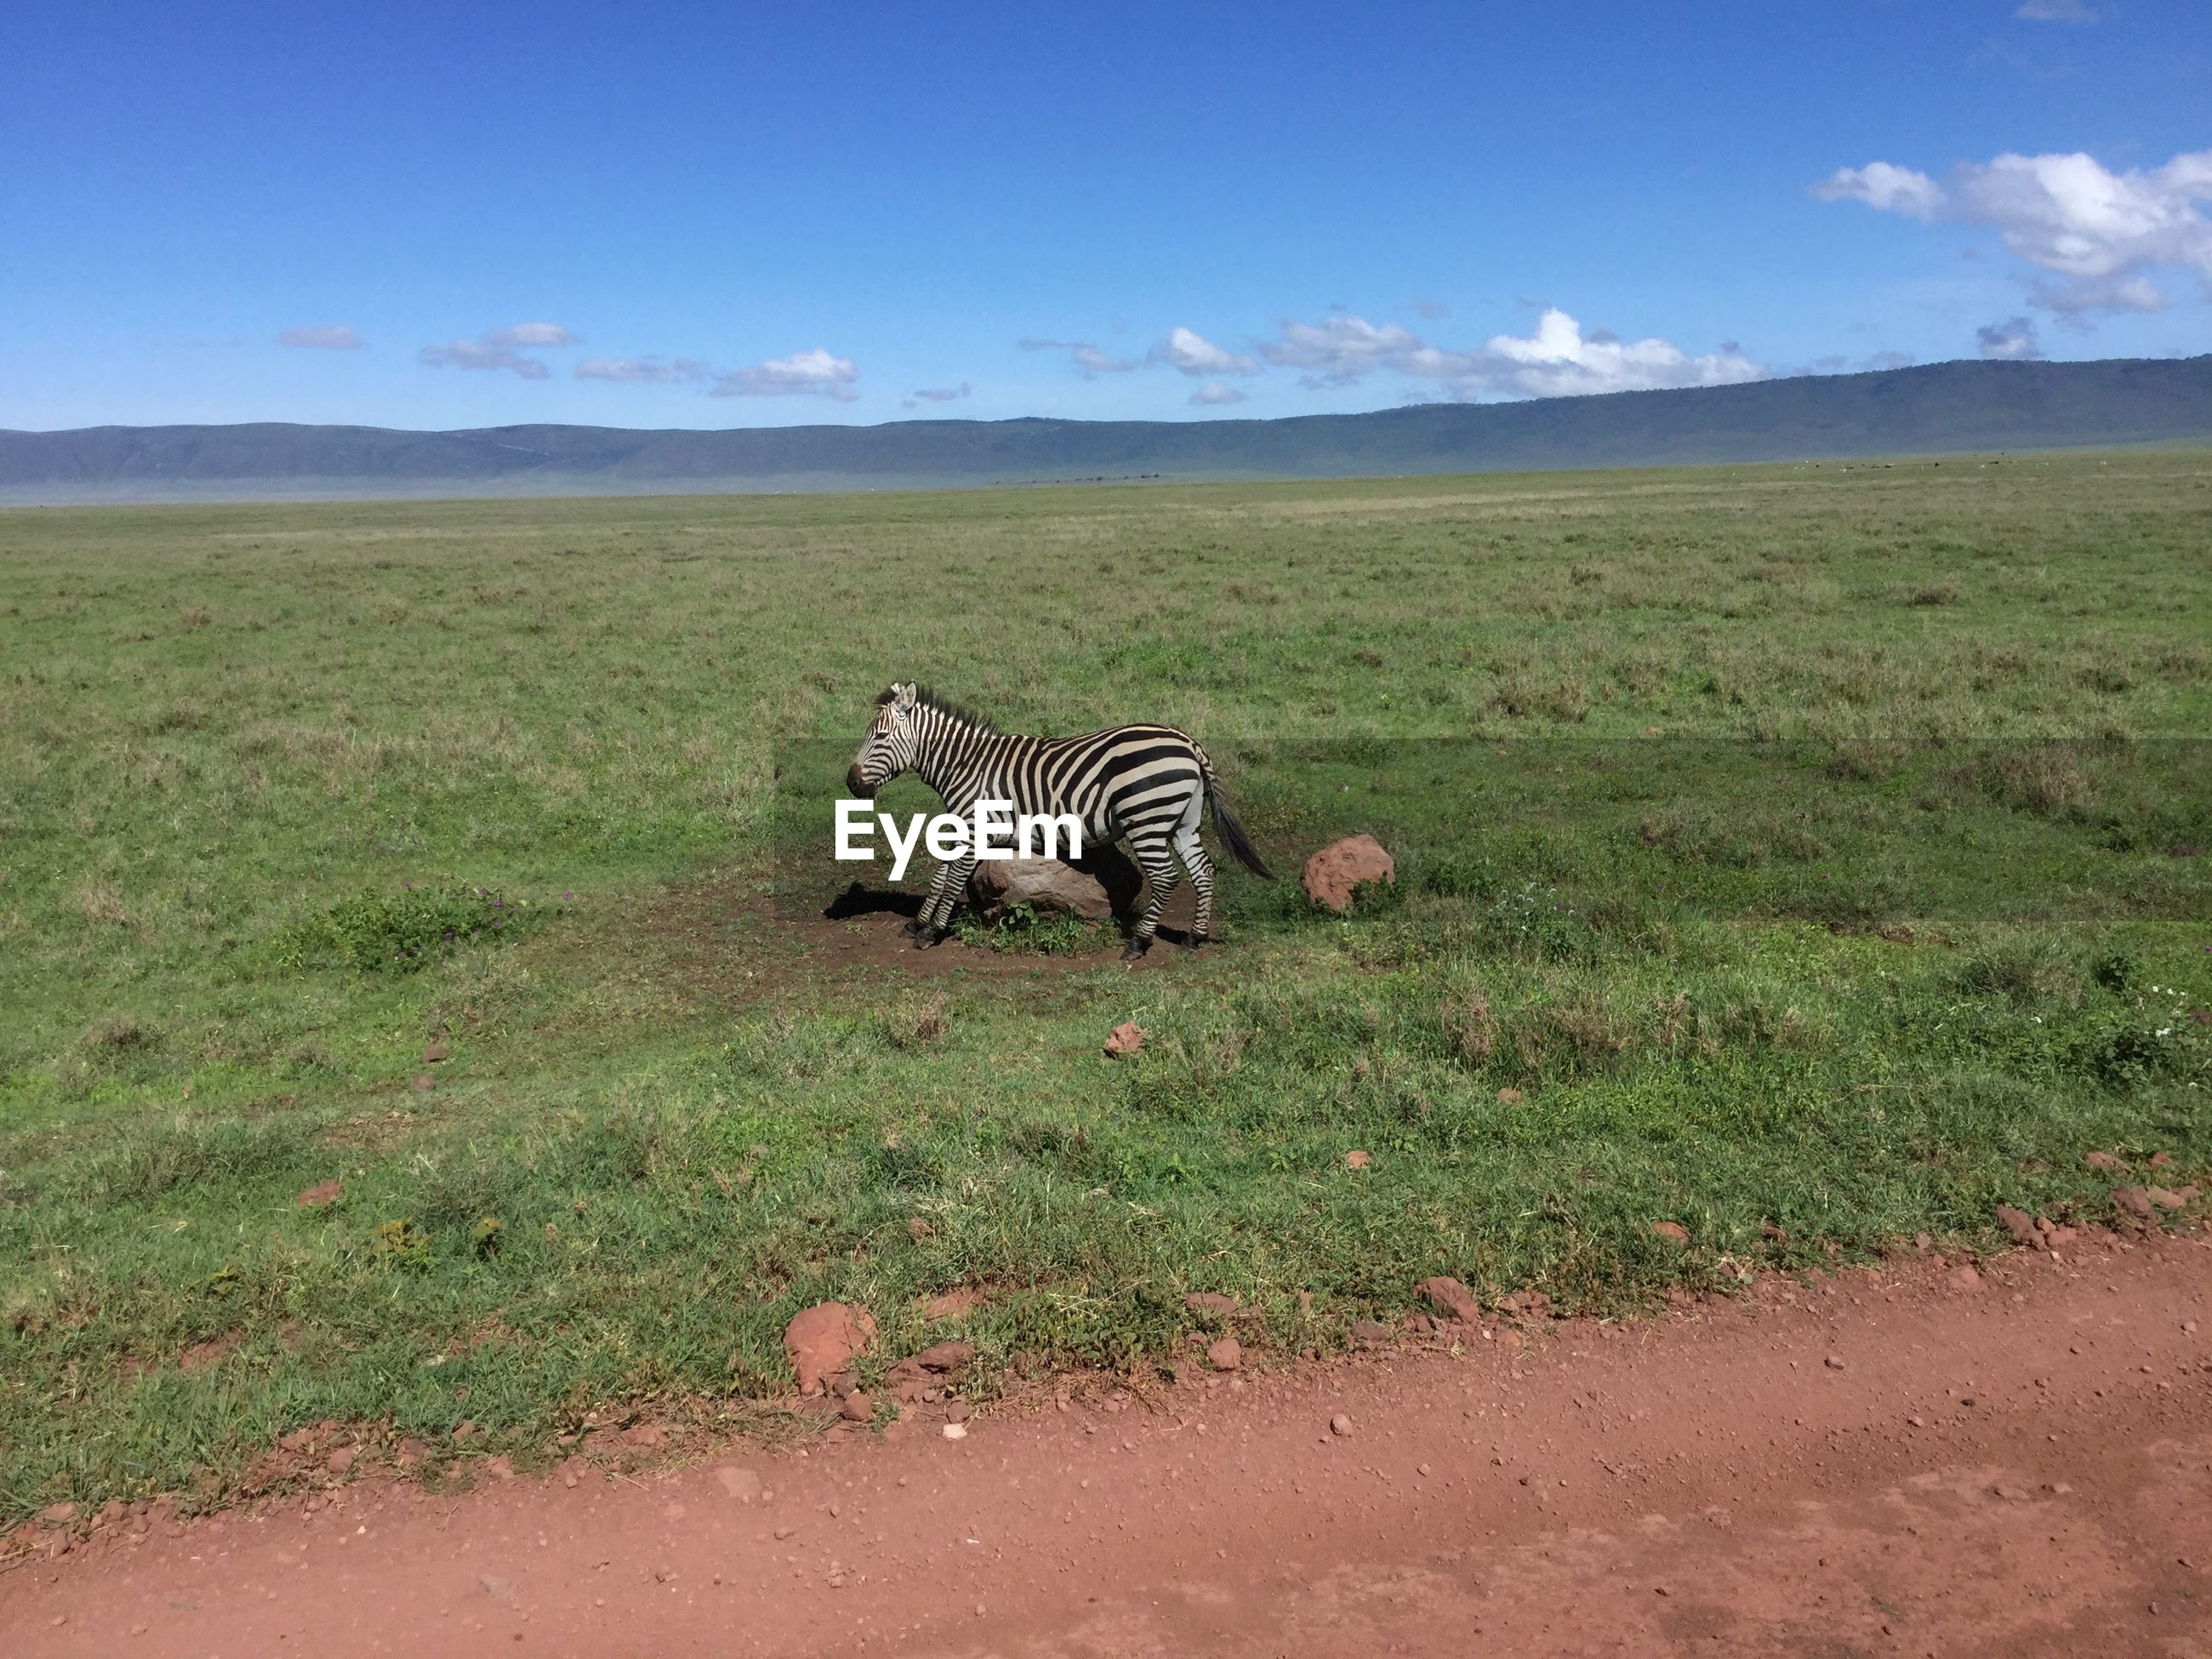 Young zebra on grassy field against sky